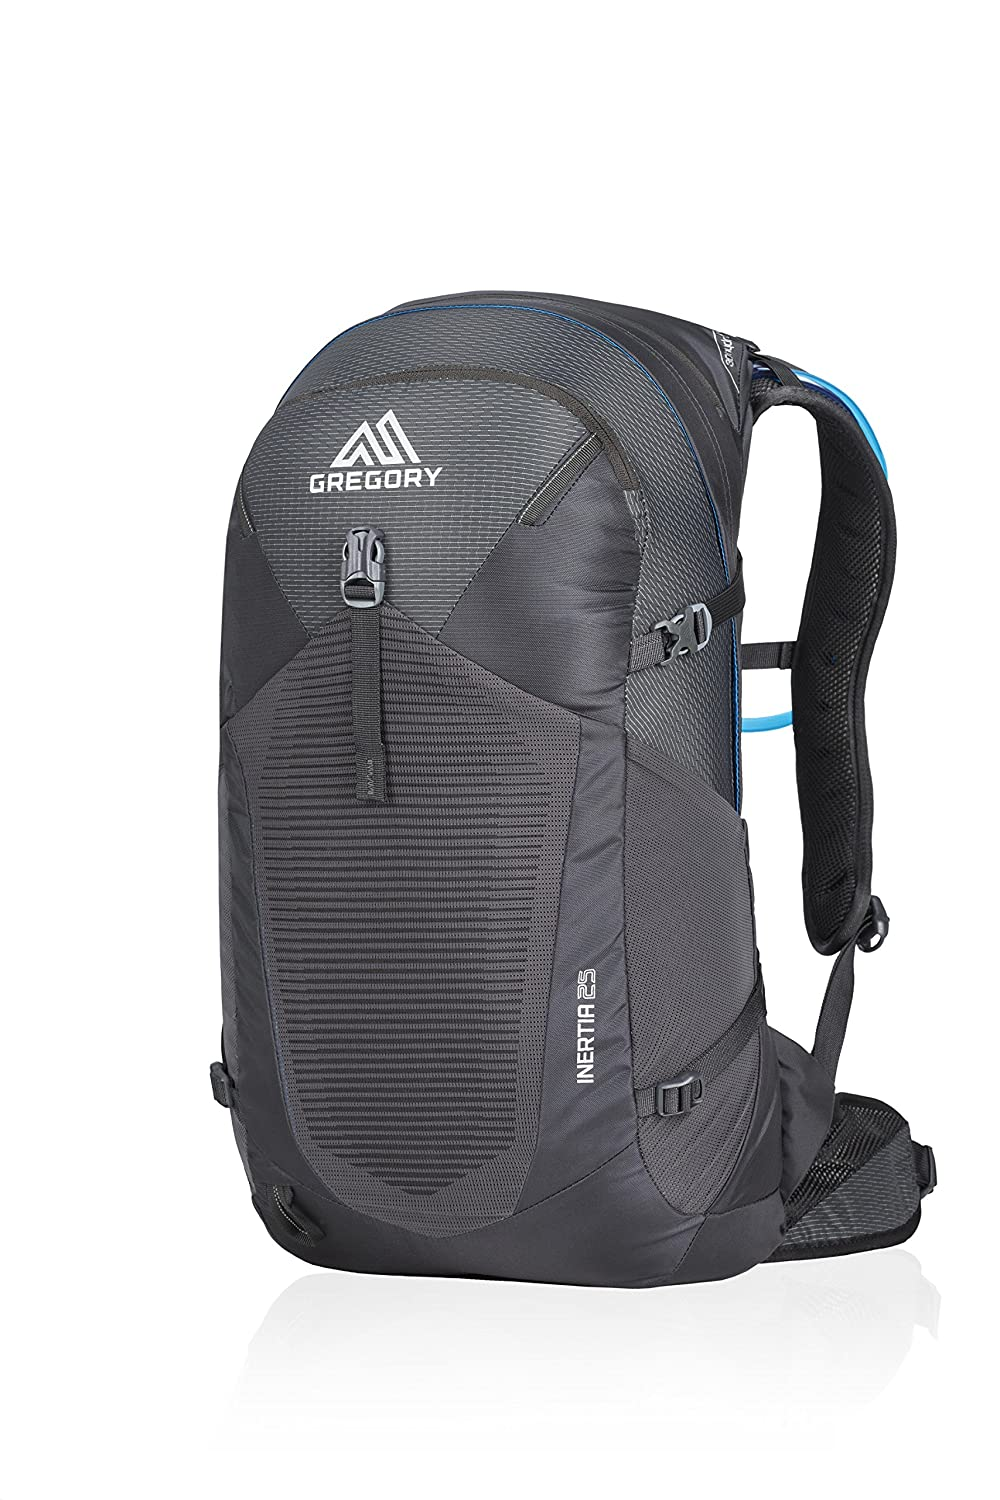 Shadow Black One Size Gregory Mountain Products Men's Inertia 25 Liter Day Hiking Backpack   Day Hikes, Walking, Travel   Hydration Bladder Included, Padded Adjustable Straps, Quick Access Pockets